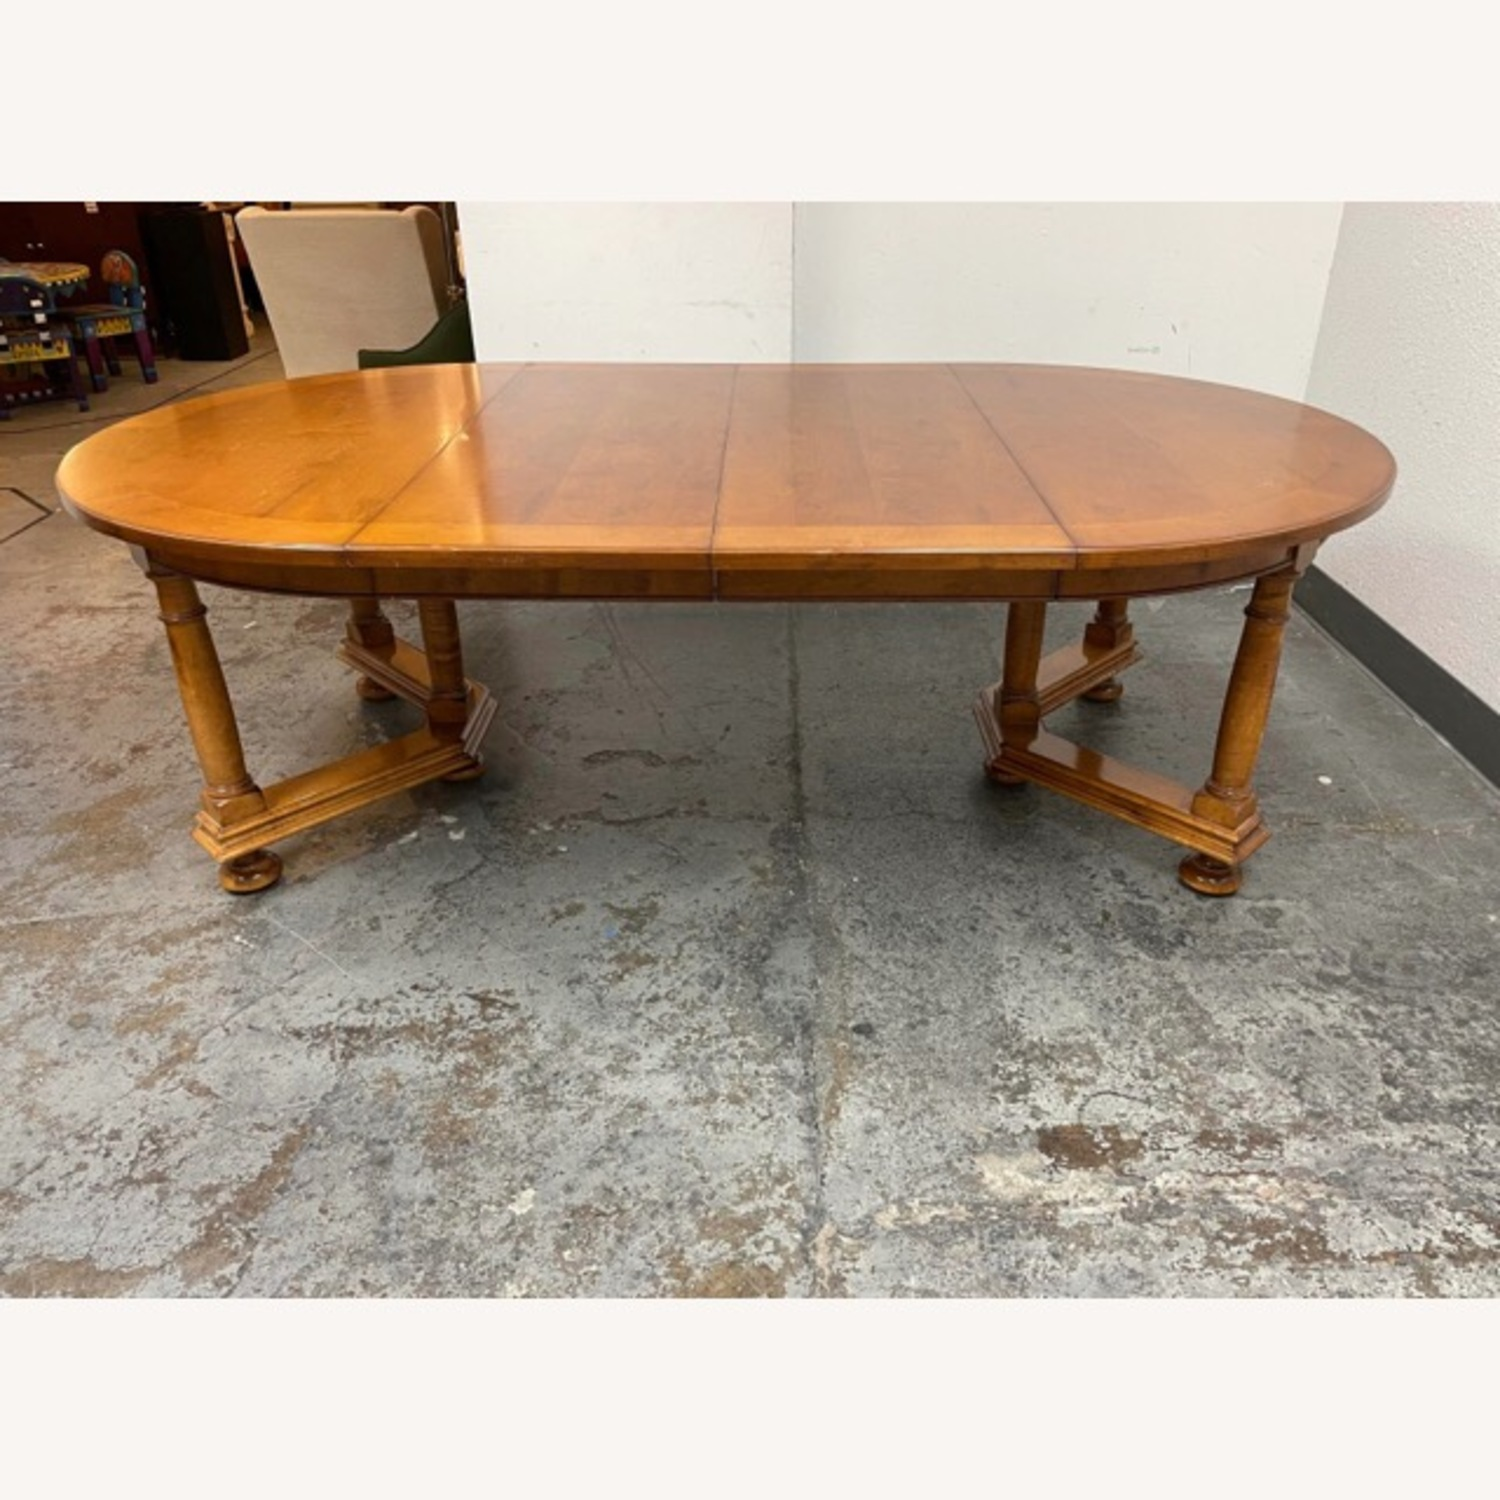 Milling Road Hildebrand Dining Table - image-9